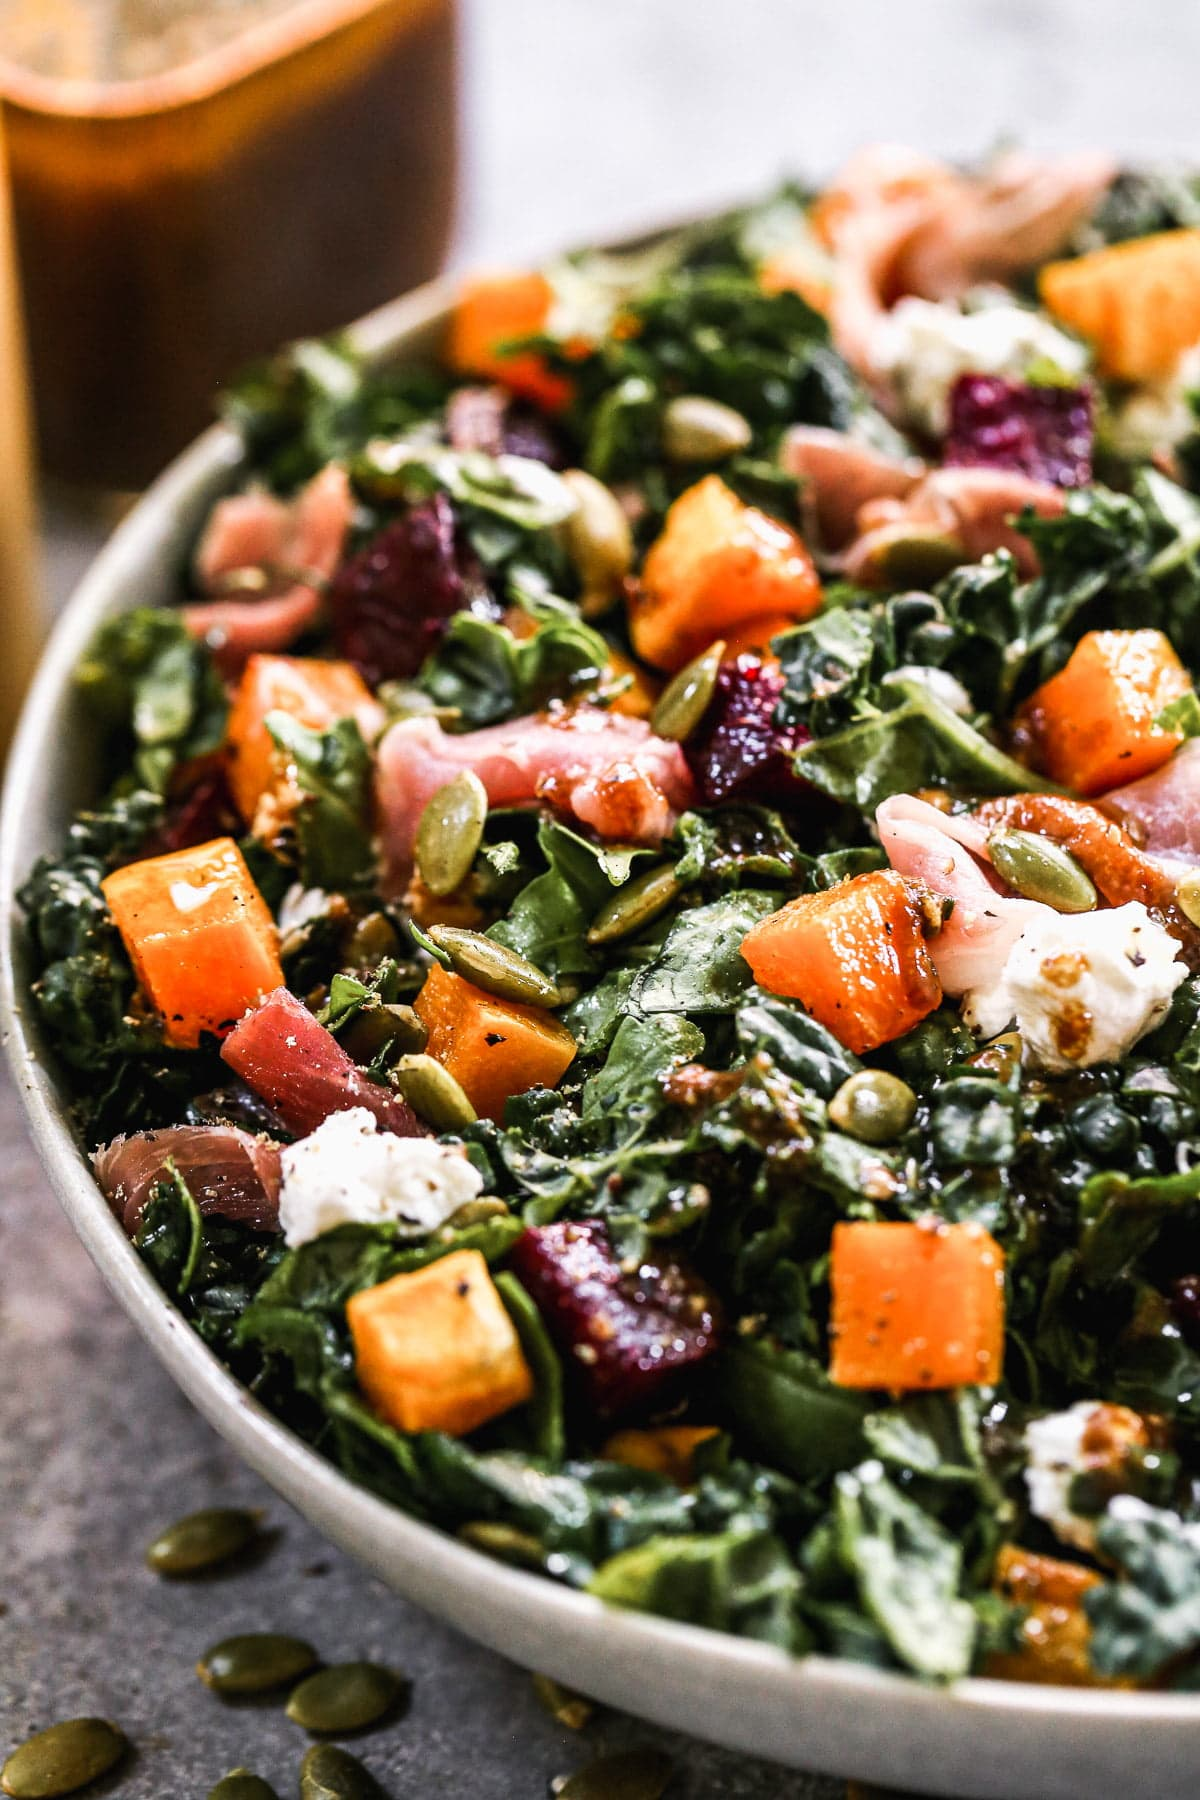 If you pick one salad to make on repeat this fall, let it be our Roasted Butternut Squash Salad. This fall-forward salad is packed with roasted butternut squash and beets, speckled with creamy goat cheese, crunchy pepita seeds and hand-torn pieces of salty prosciutto. We toss everything in a sweet and savory pumpkin vinaigrette and dig in.